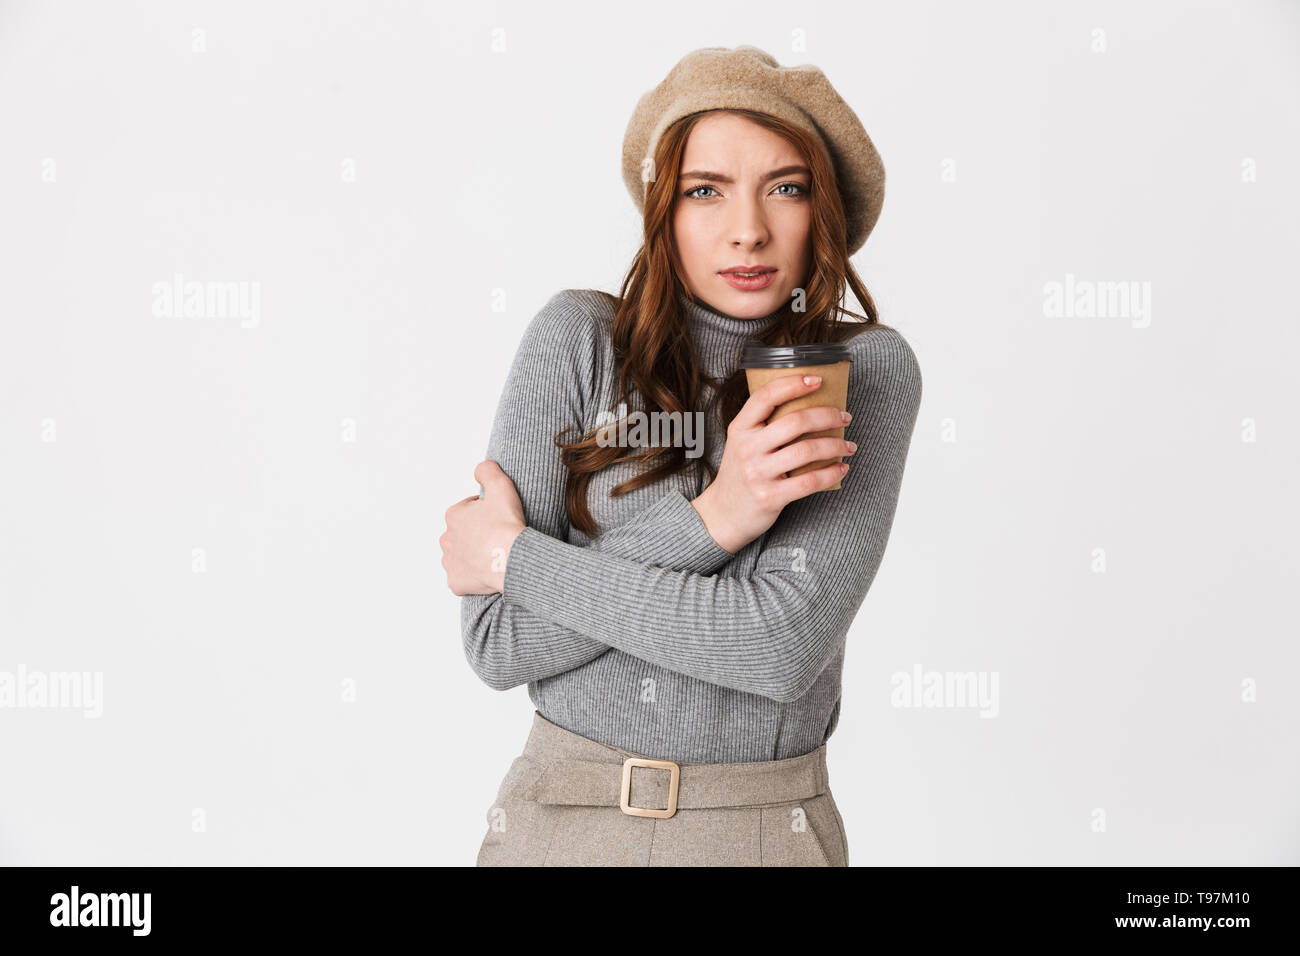 Image of beautiful frozen sad woman drinking coffee isolated over white wall background. - Stock Image